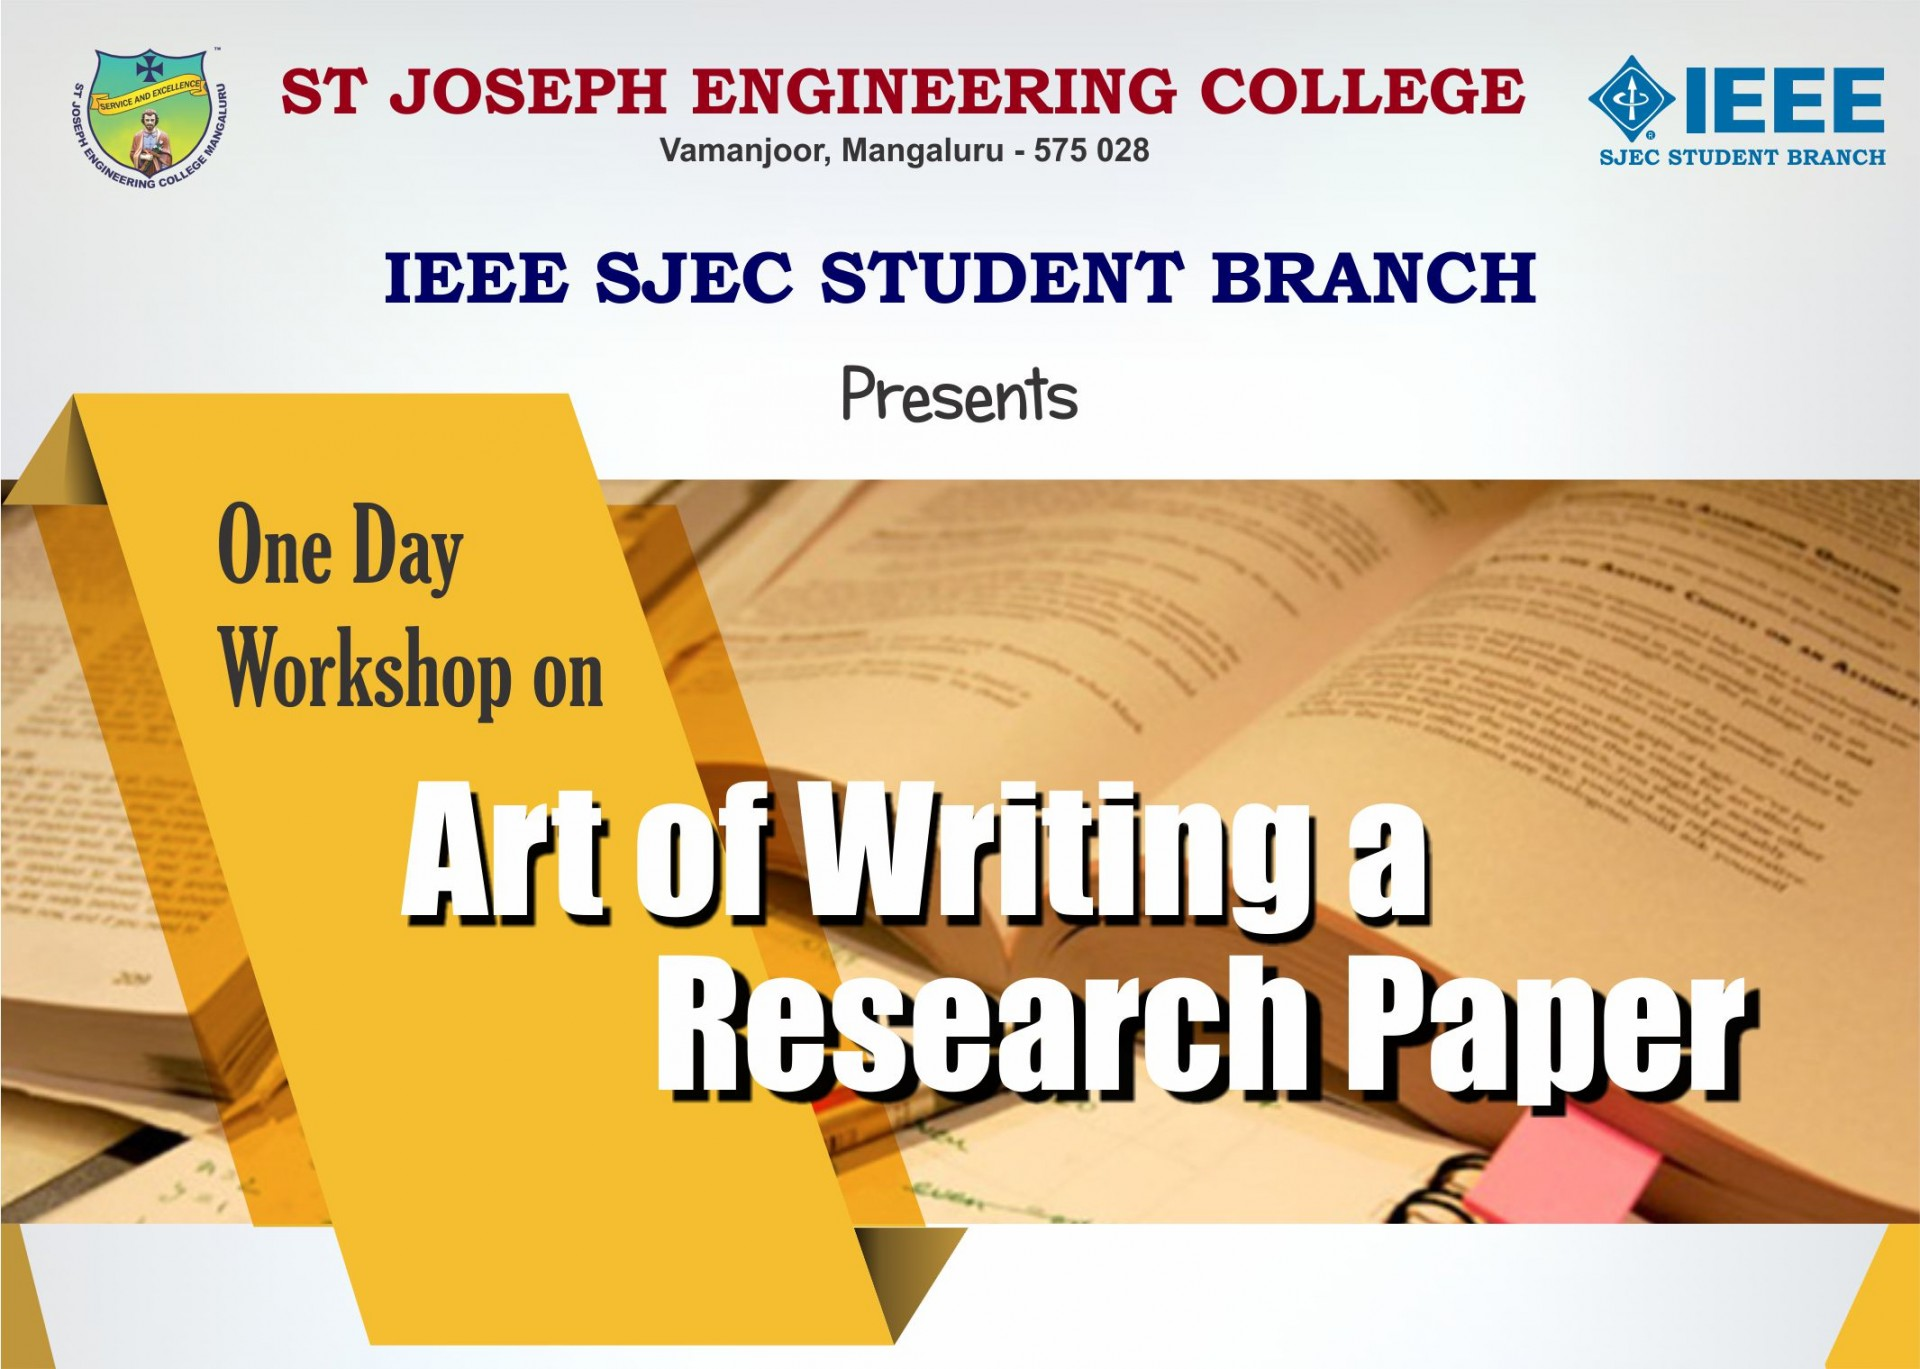 005 Workshop Banner Research Paper Writing Unique Papers A Complete Guide Pdf Download James D Lester 1920